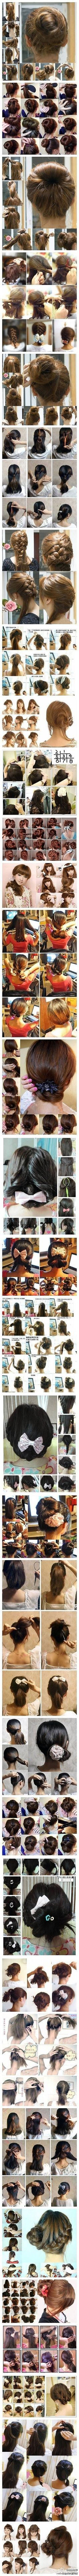 32 Hairstyles You Can Do On Yourself ❤ i kinda miss fixing my hair ^_^